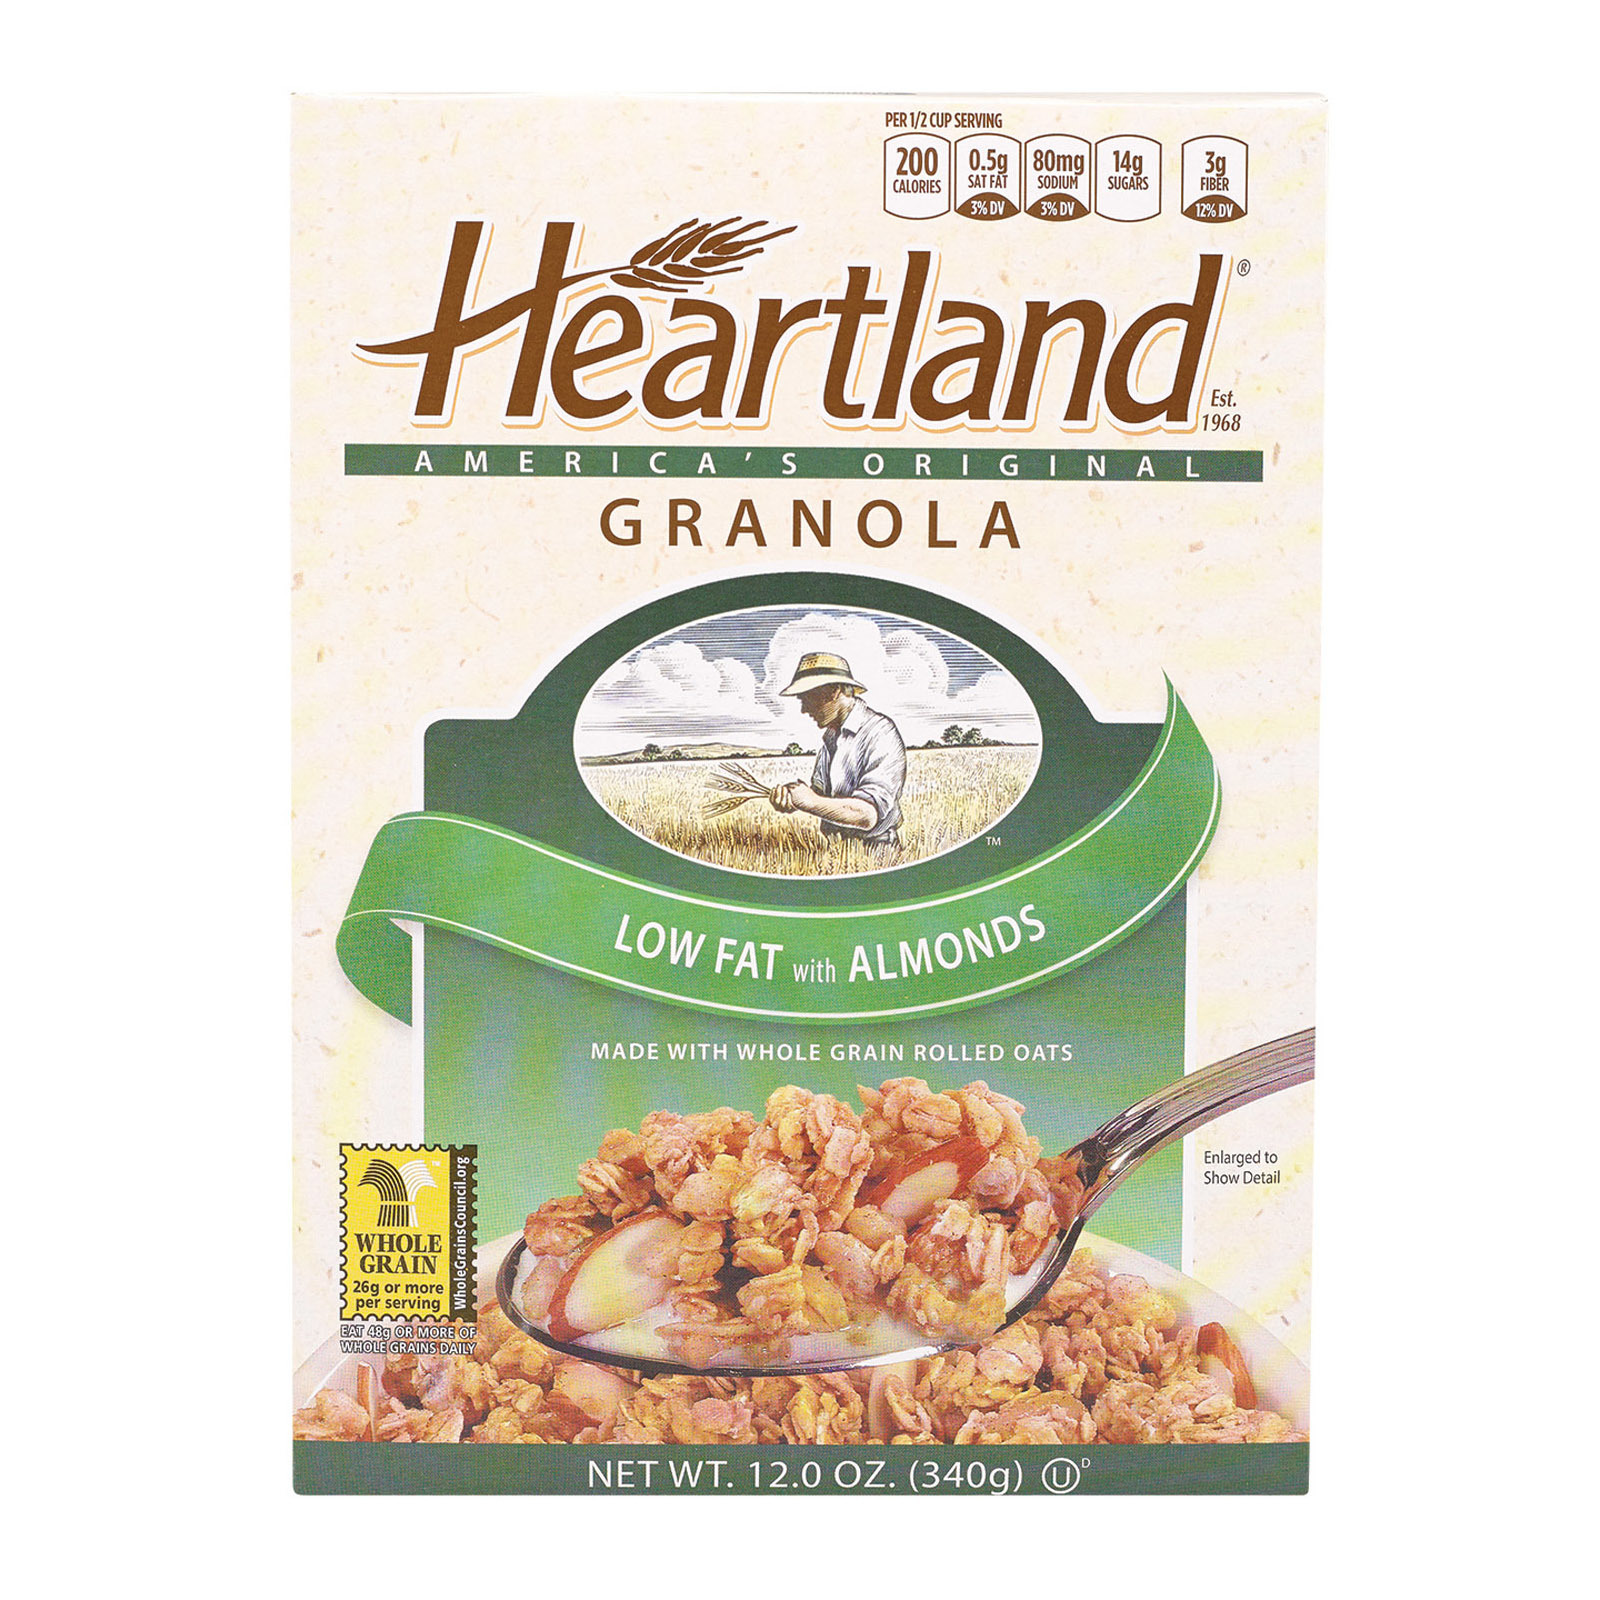 Heartland Granola Cereals - Low Fat, No Raisin - Case of 6 - 12 oz.